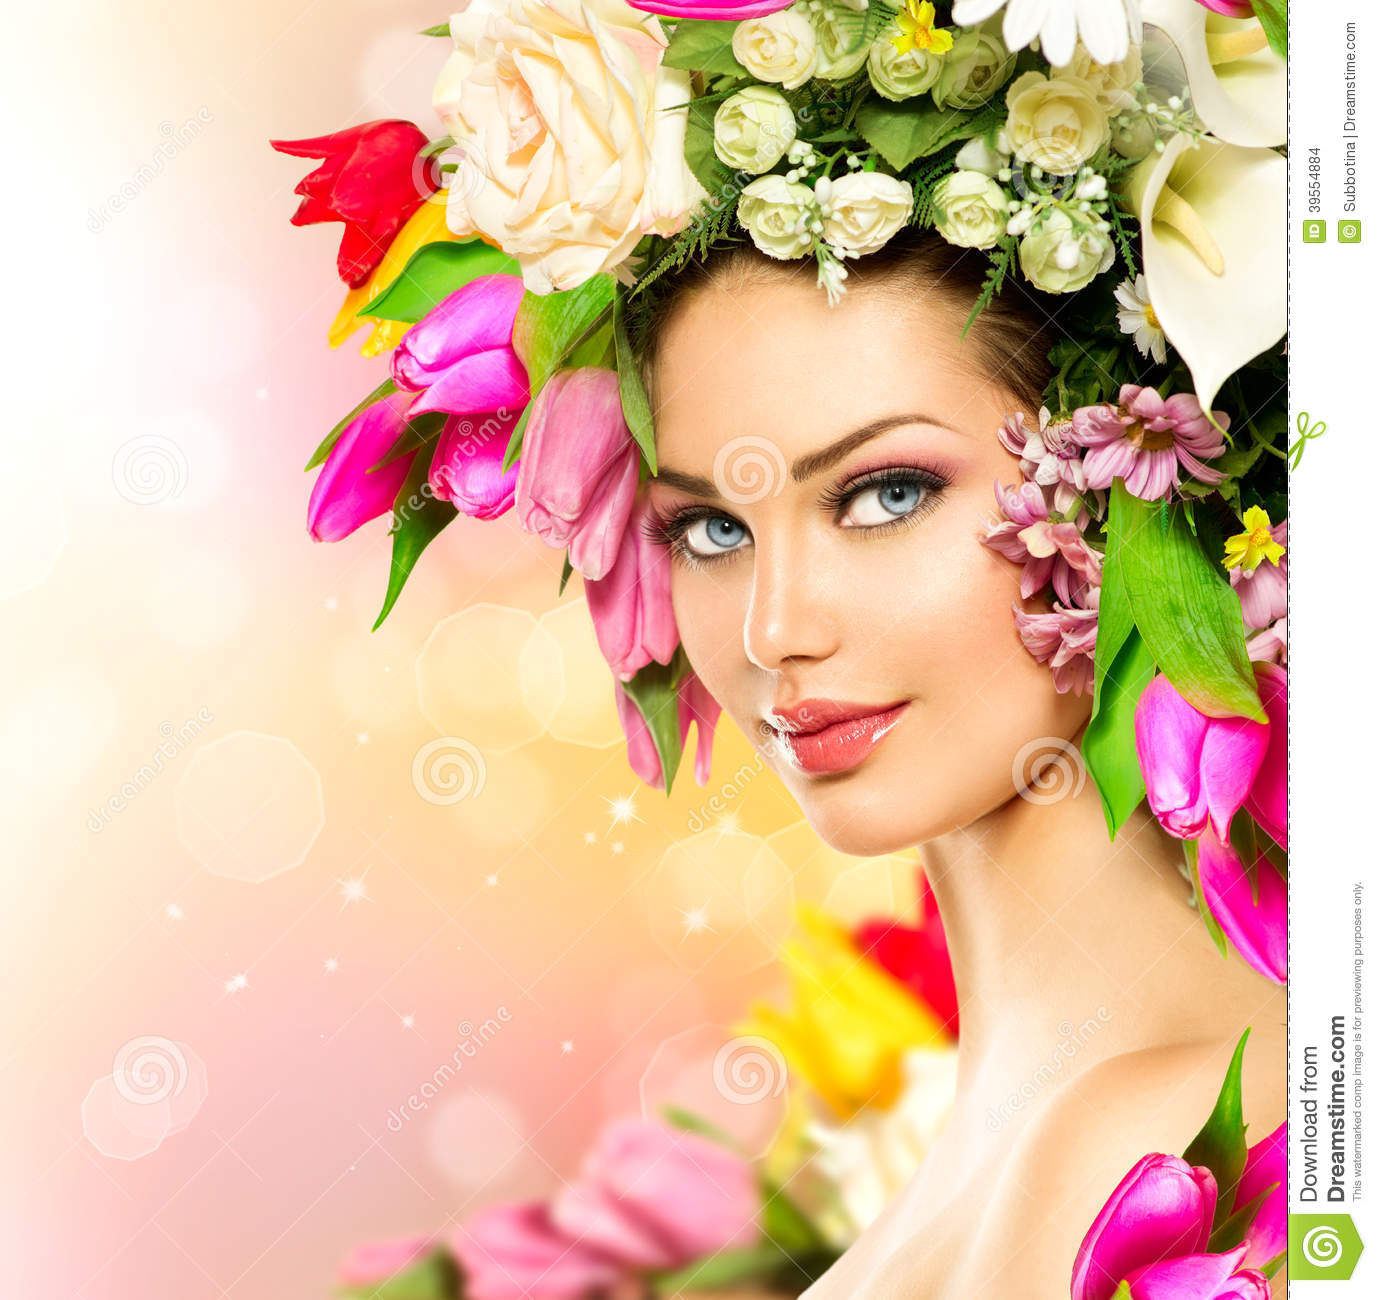 Beauty Girl With Flowers Hairstyle Stock Photo Image Of Girl